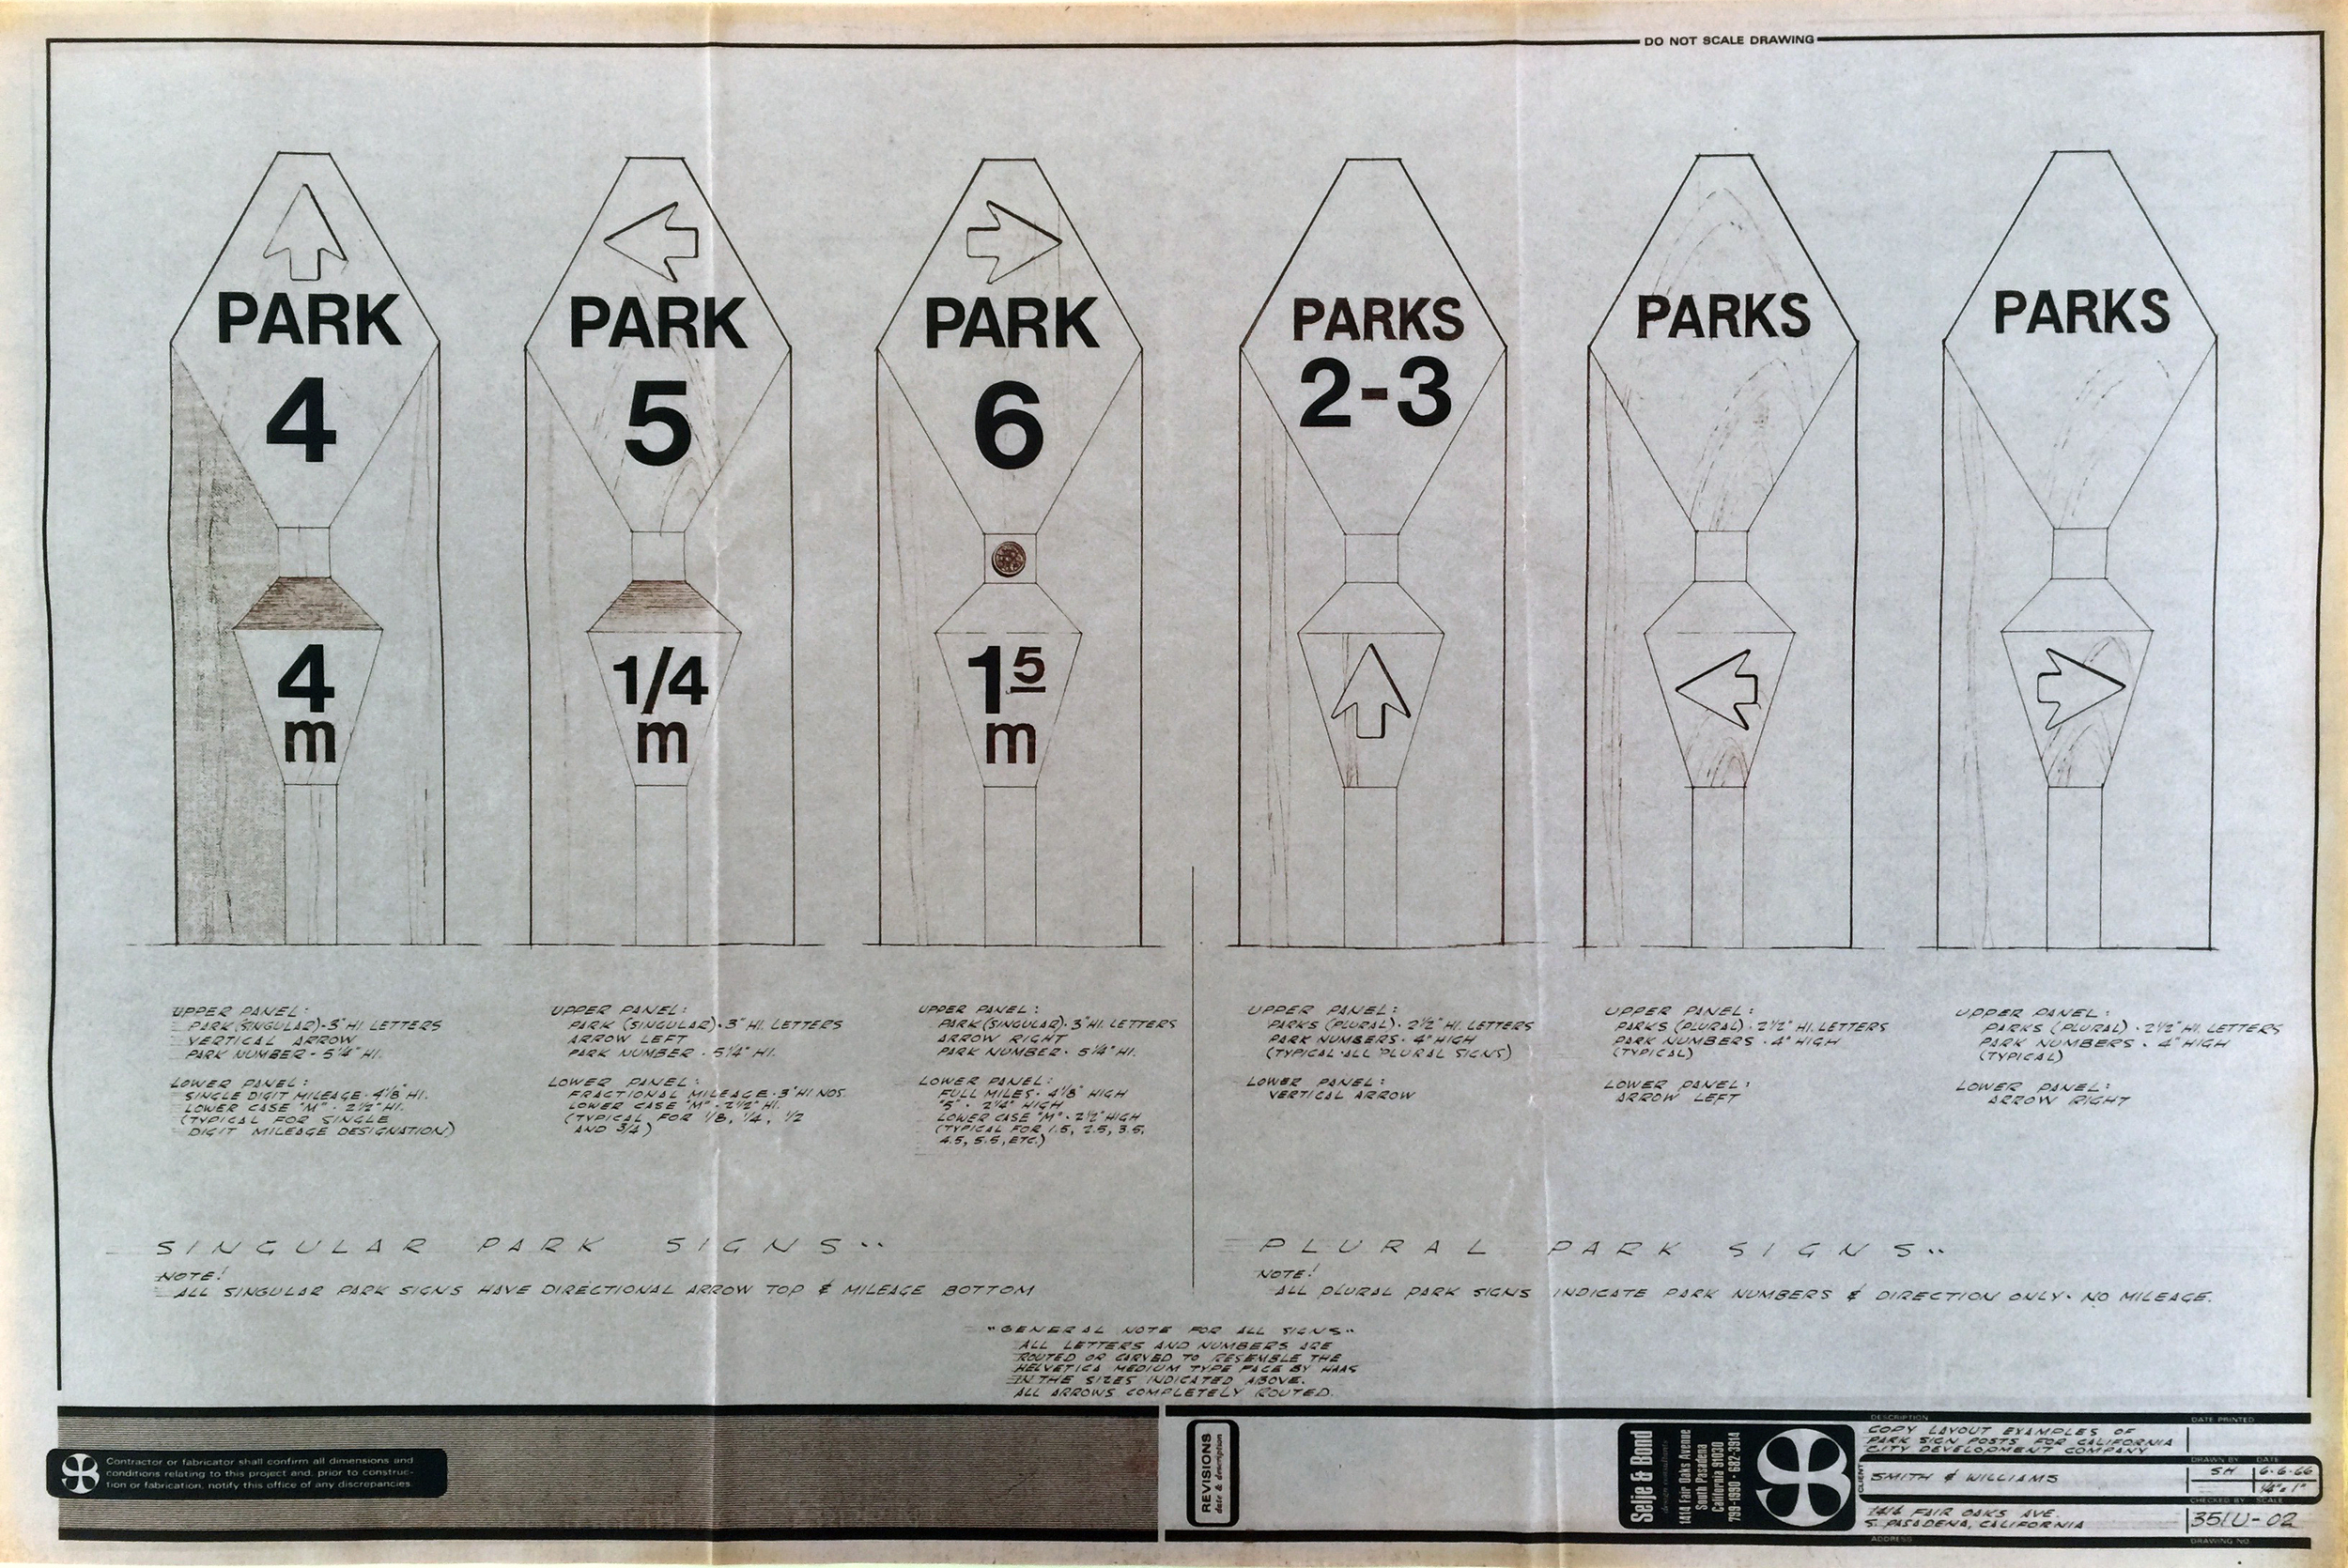 Smith and Williams, Architects and Engineers. Park Sign Posts, California City. 1966. Architecture and Design Collection, University Art Museum, UCSB.